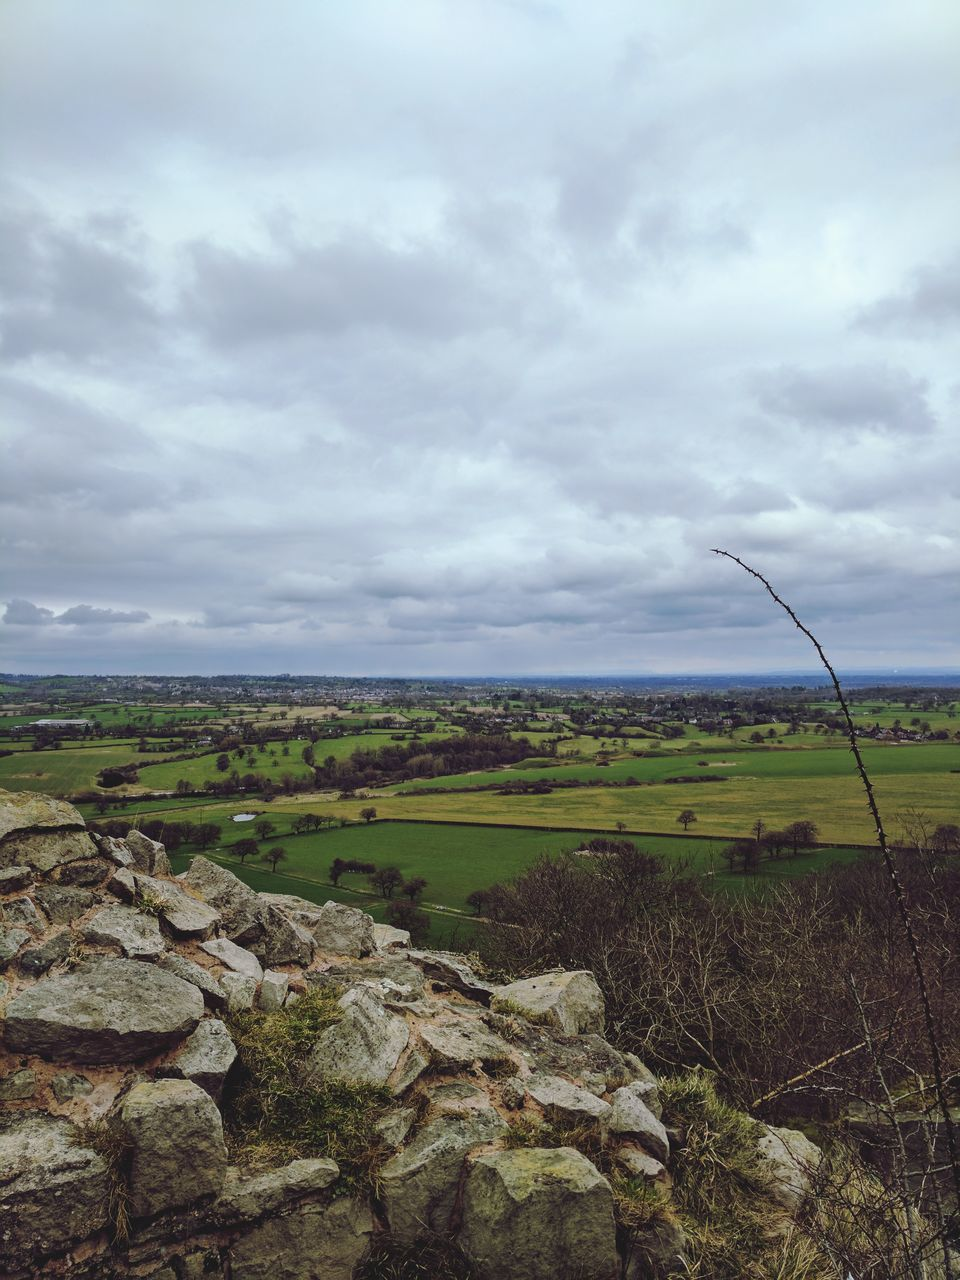 sky, cloud - sky, nature, landscape, tranquility, day, field, tranquil scene, outdoors, no people, beauty in nature, scenics, rock - object, tree